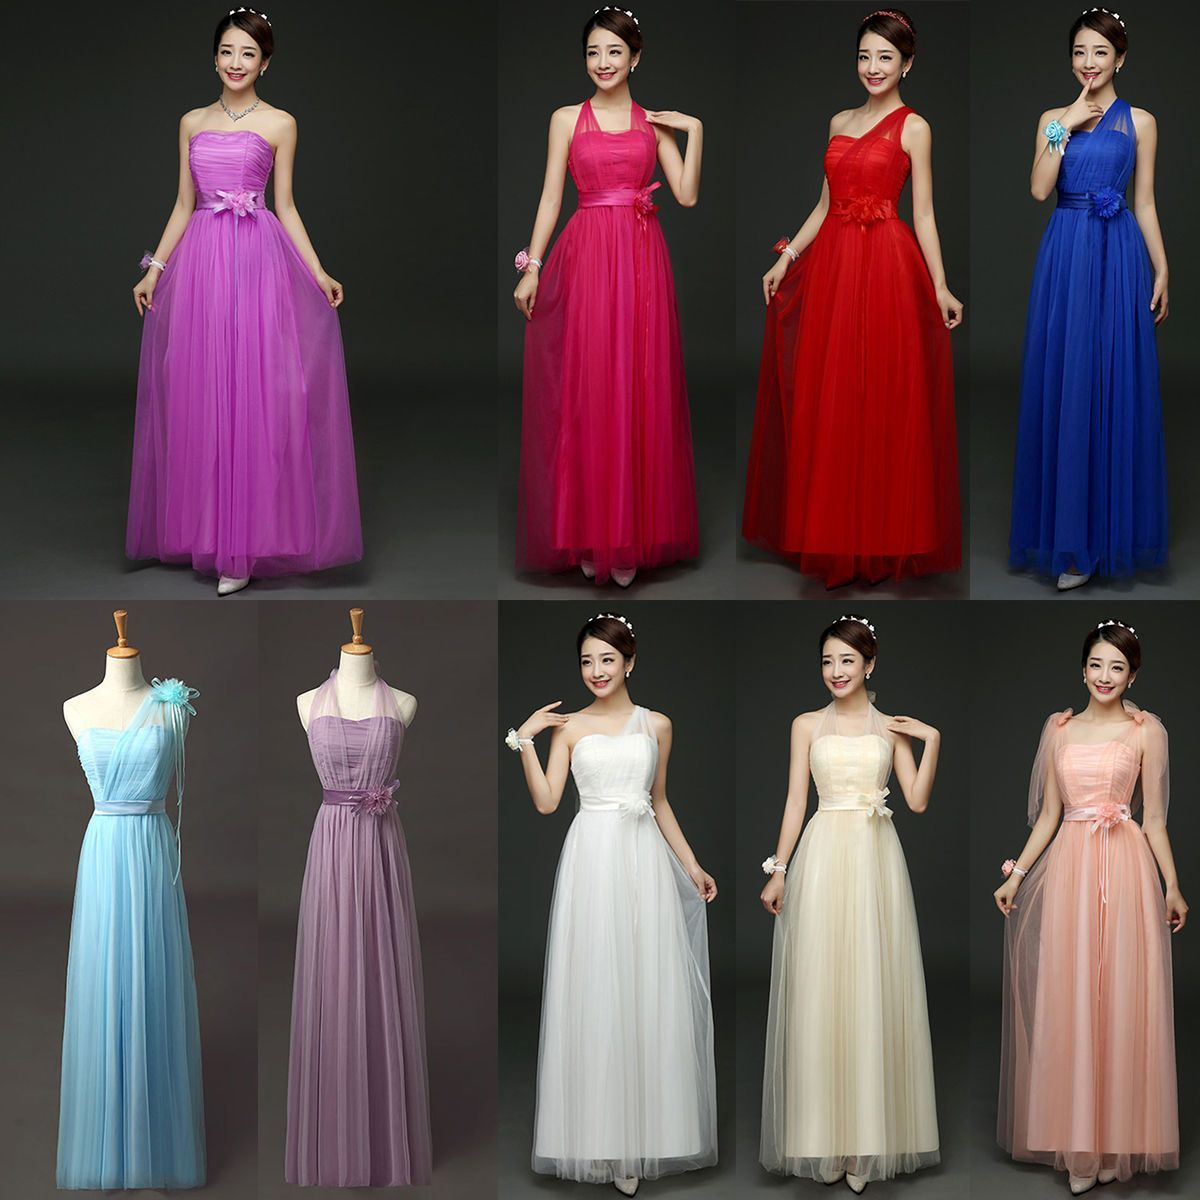 Multi wear women formal long dress wedding bridesmaid evening party